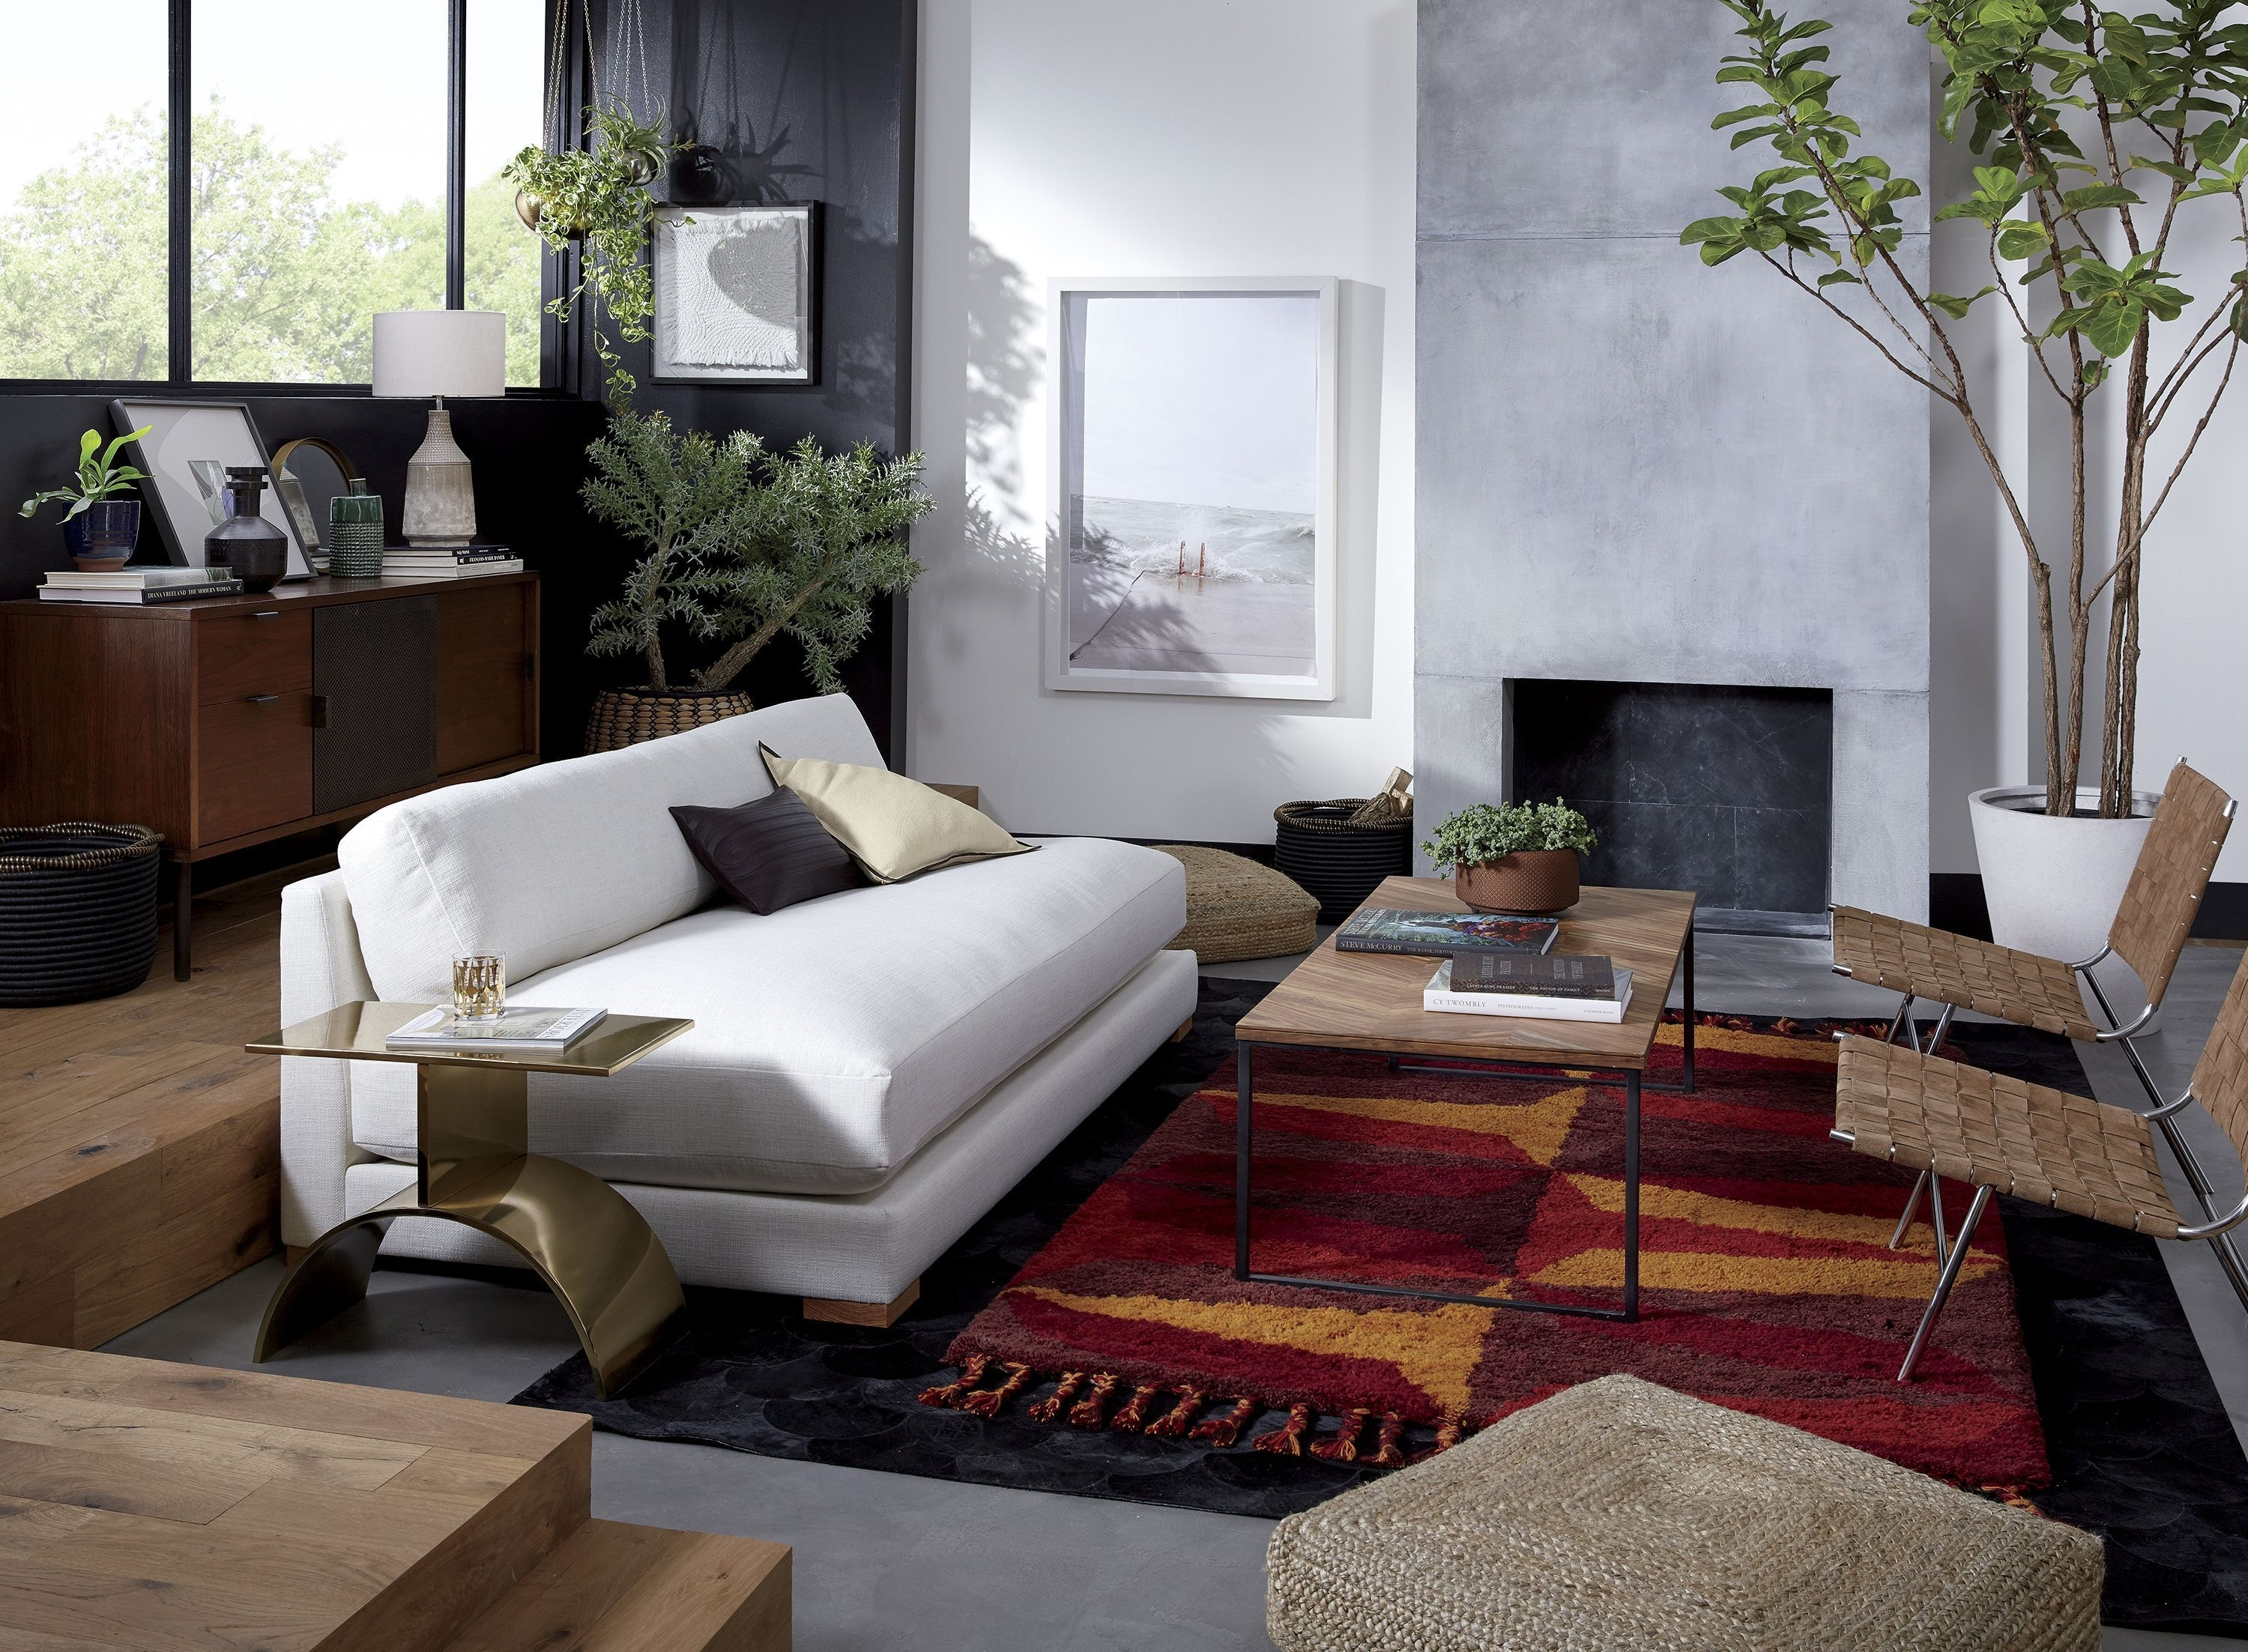 Jax Mirror Tri White Marble Side Table Spotted Hide Pouf Savile Sofa inside Darbuka Black Coffee Tables (Image 17 of 30)